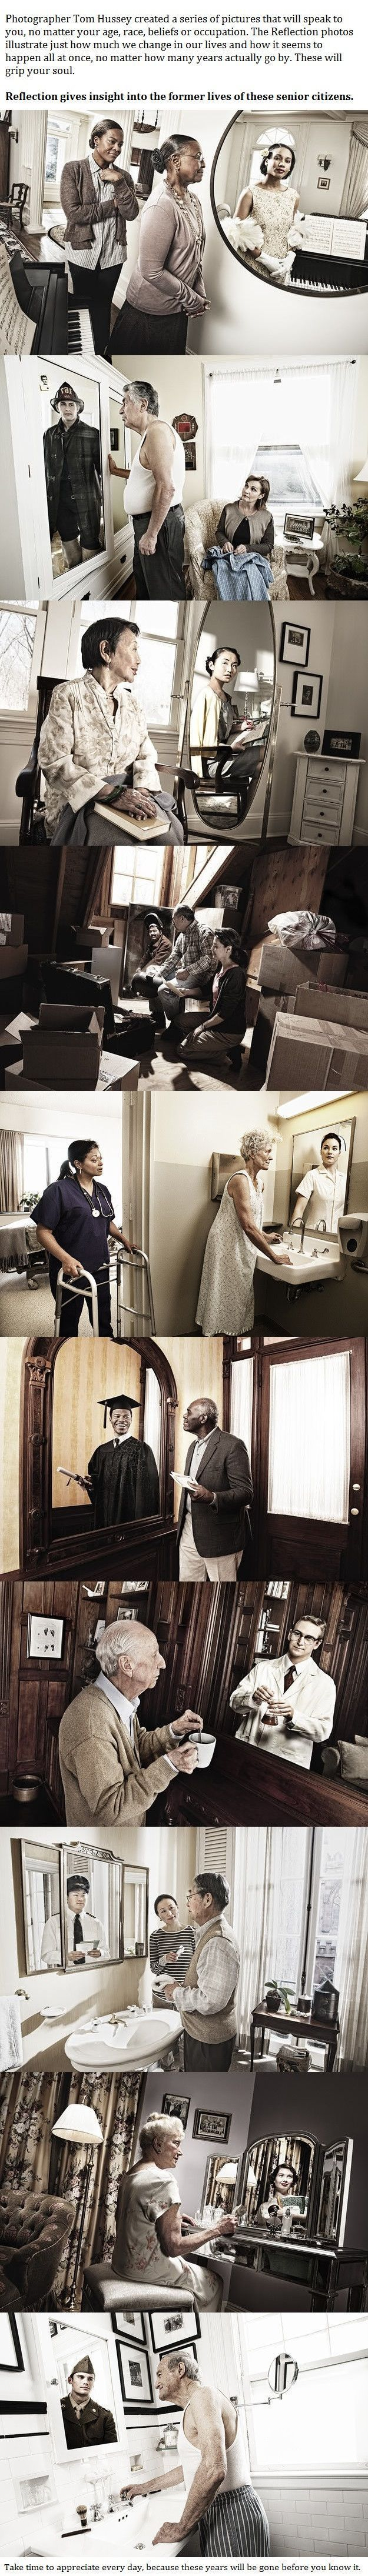 ...everyone has a story especially those who have lived through challenging times. I wish I could sit and listen to those stories. This is very powerful photography.